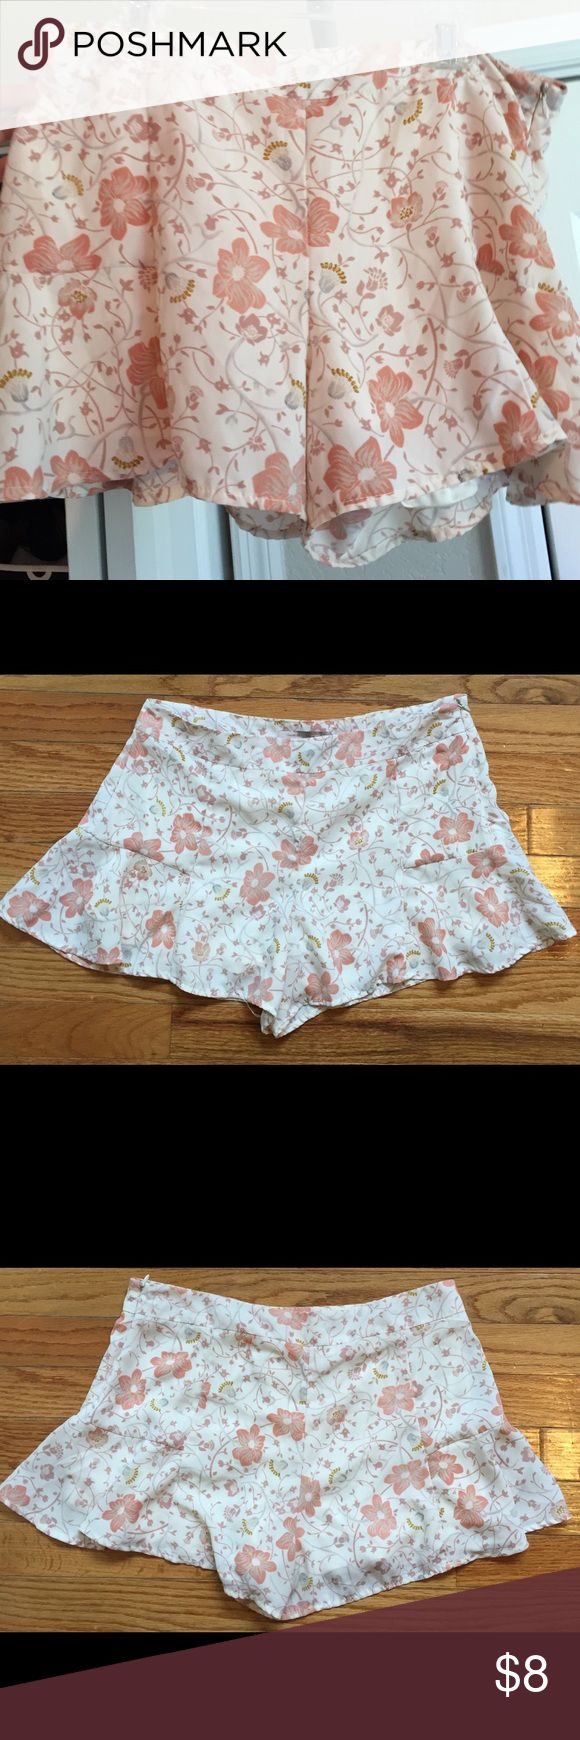 Flowy Floral Shorts - NWOT Never worn! They are a size small, but fit more like a medium. Light pink floral pattern. The fit is super flattering, they zip up on the side and the bottom of the shorts flare out a little bit like a skirt. The lining on the inside is silk. Forever 21 Shorts